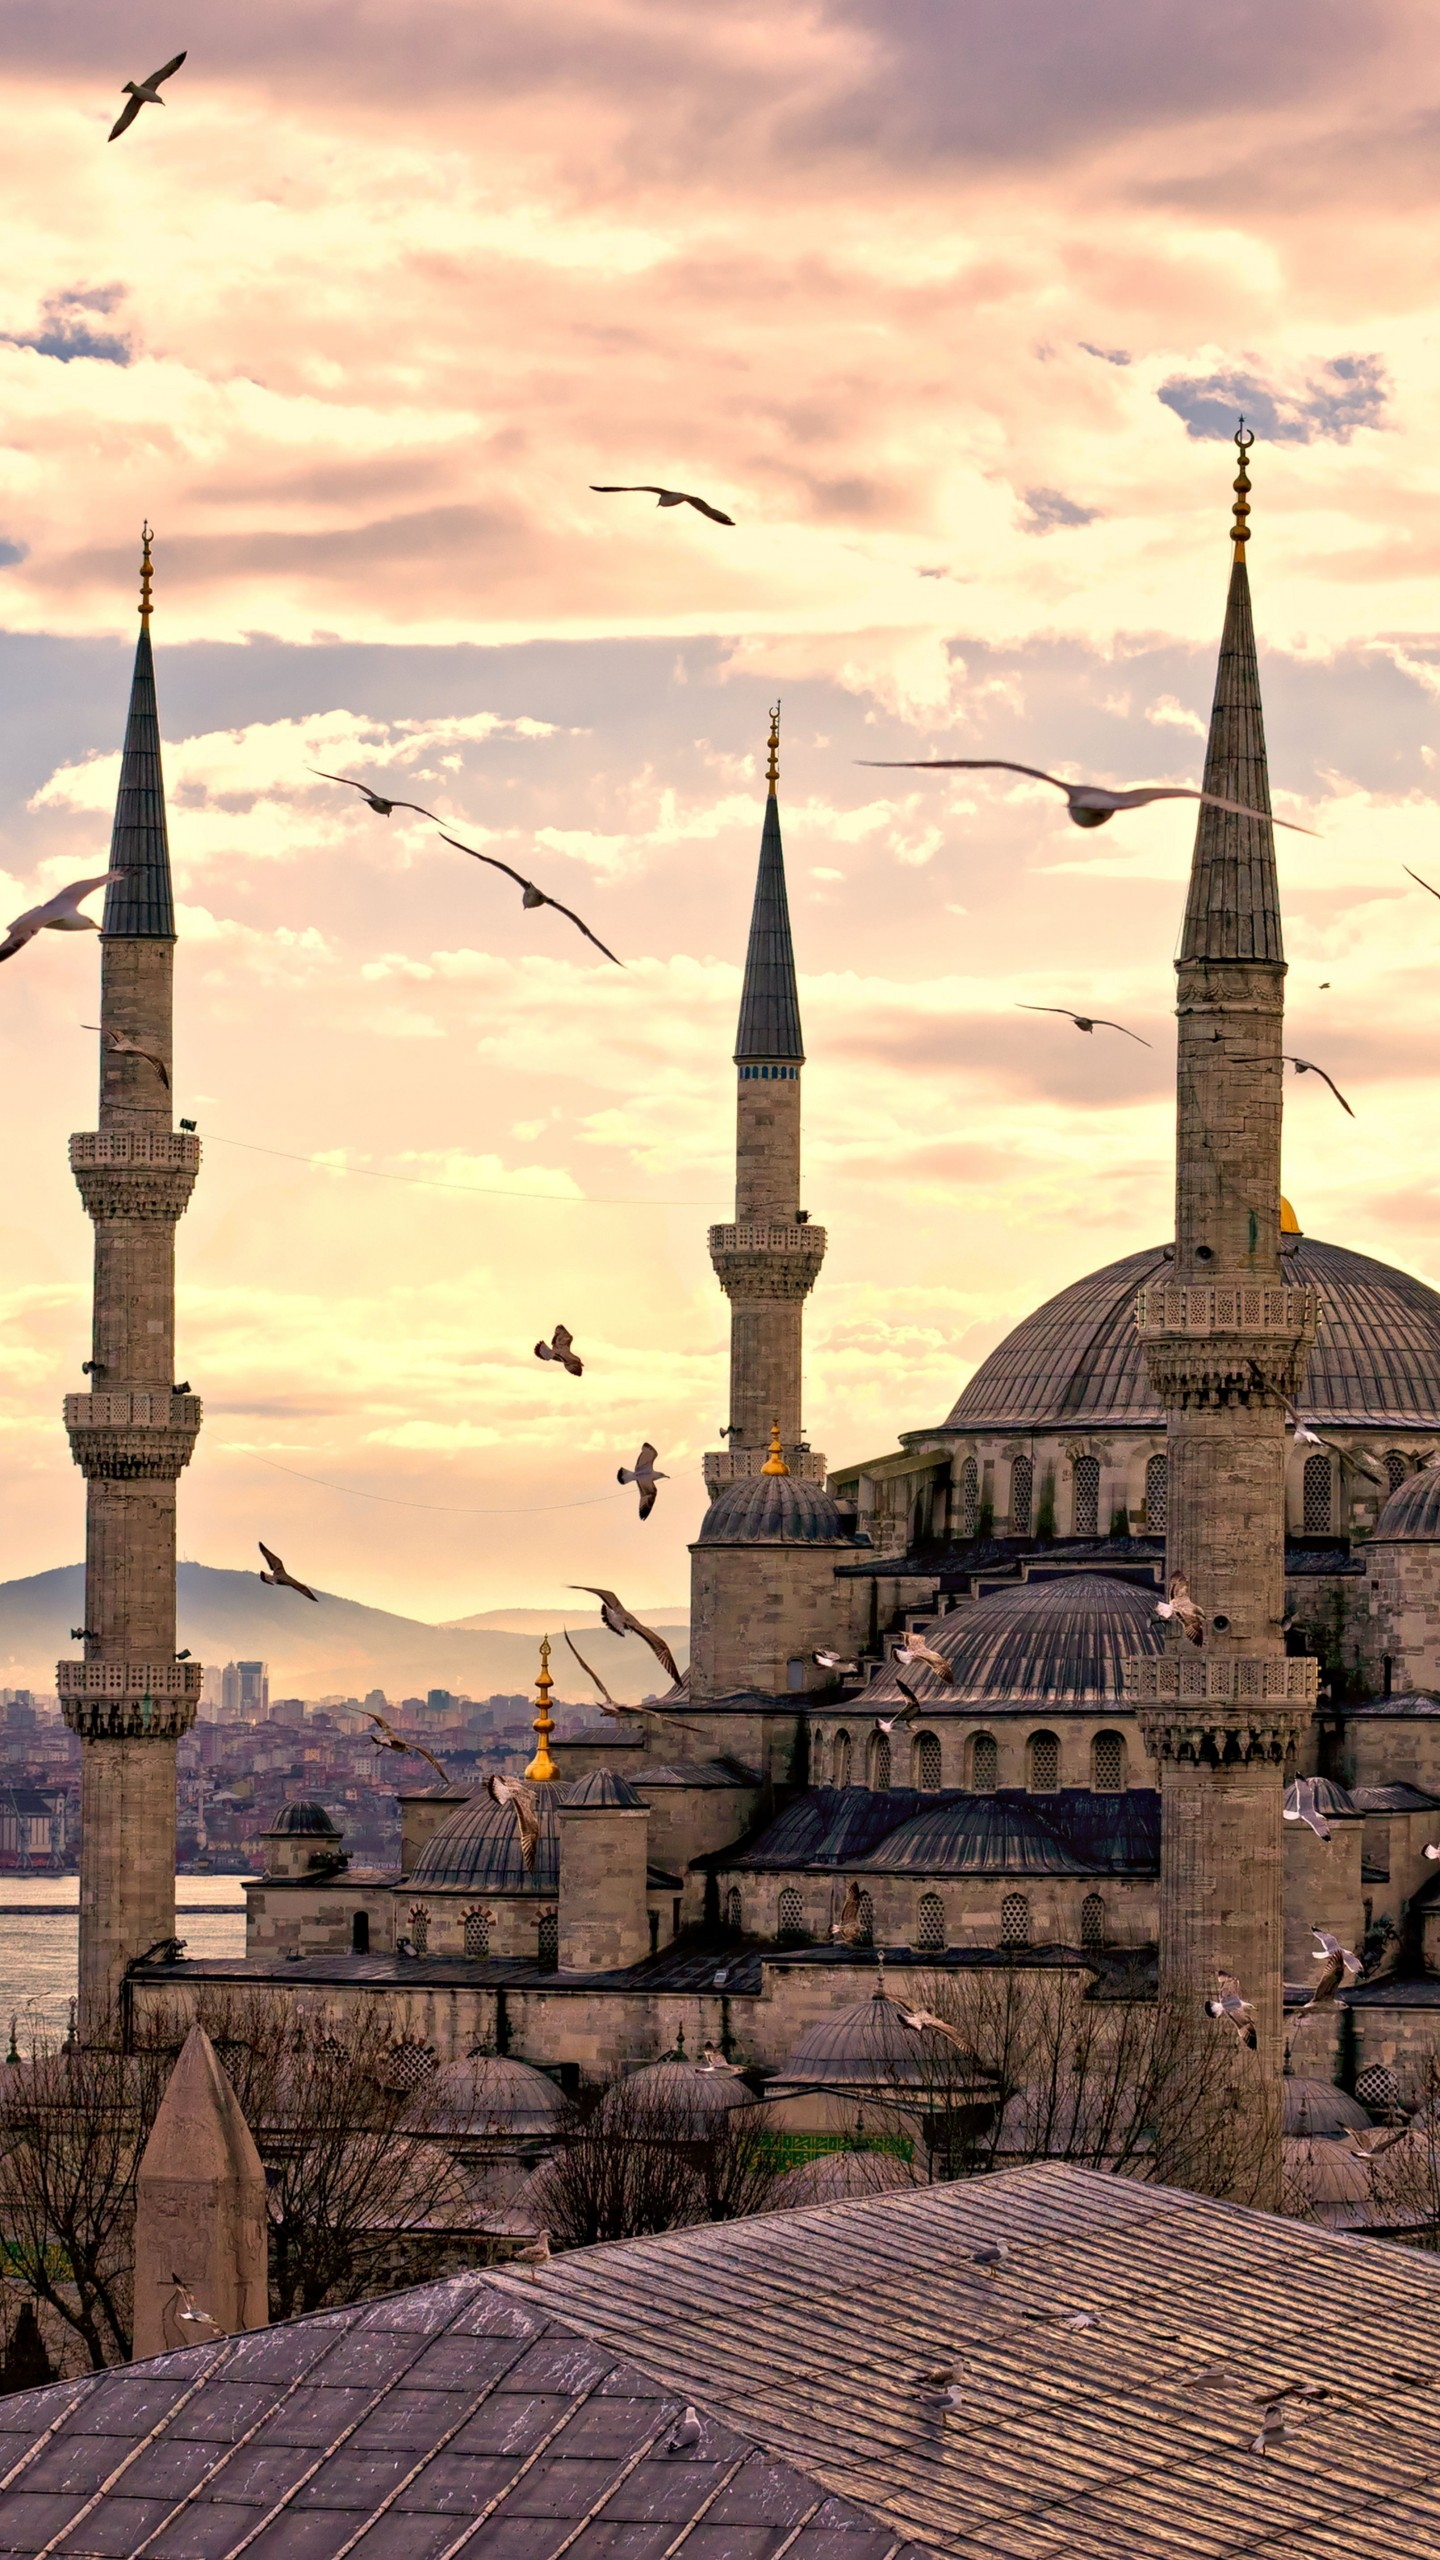 Sunrise Wallpapers With Quotes Wallpaper Sultan Ahmed Mosque Istanbul Turkey Travel